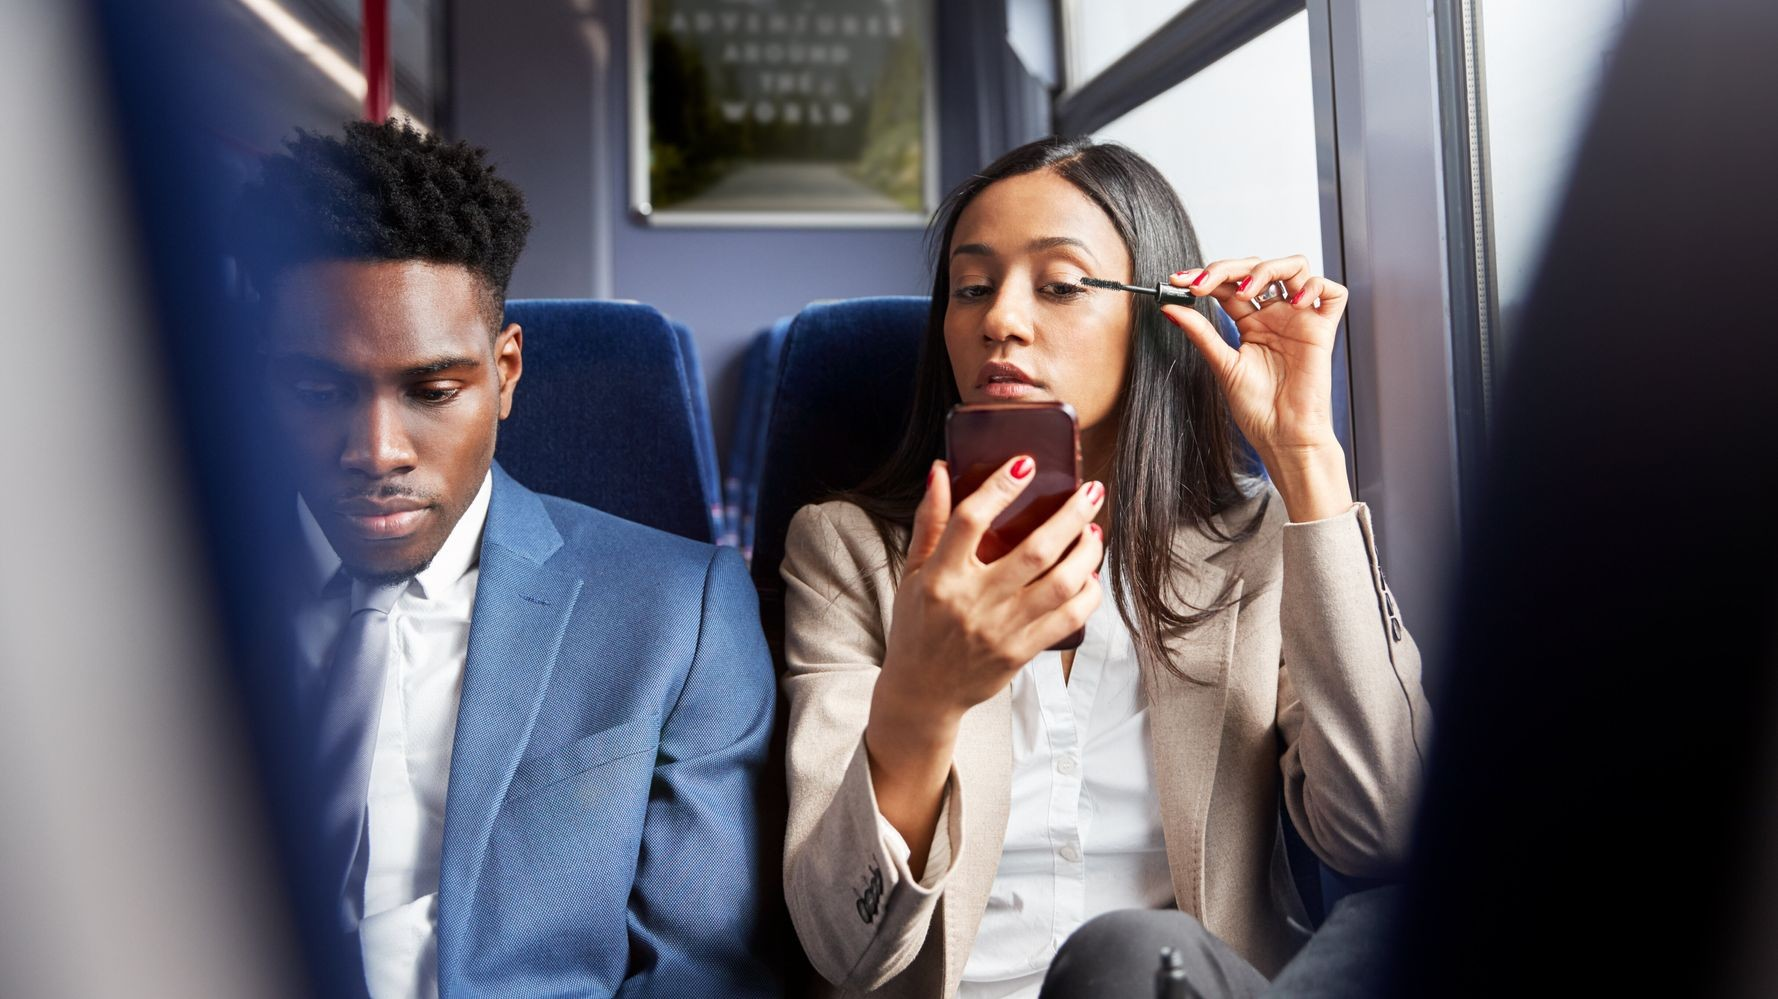 woman applying mascara whilst on the train, sat next to a fellow passenger.